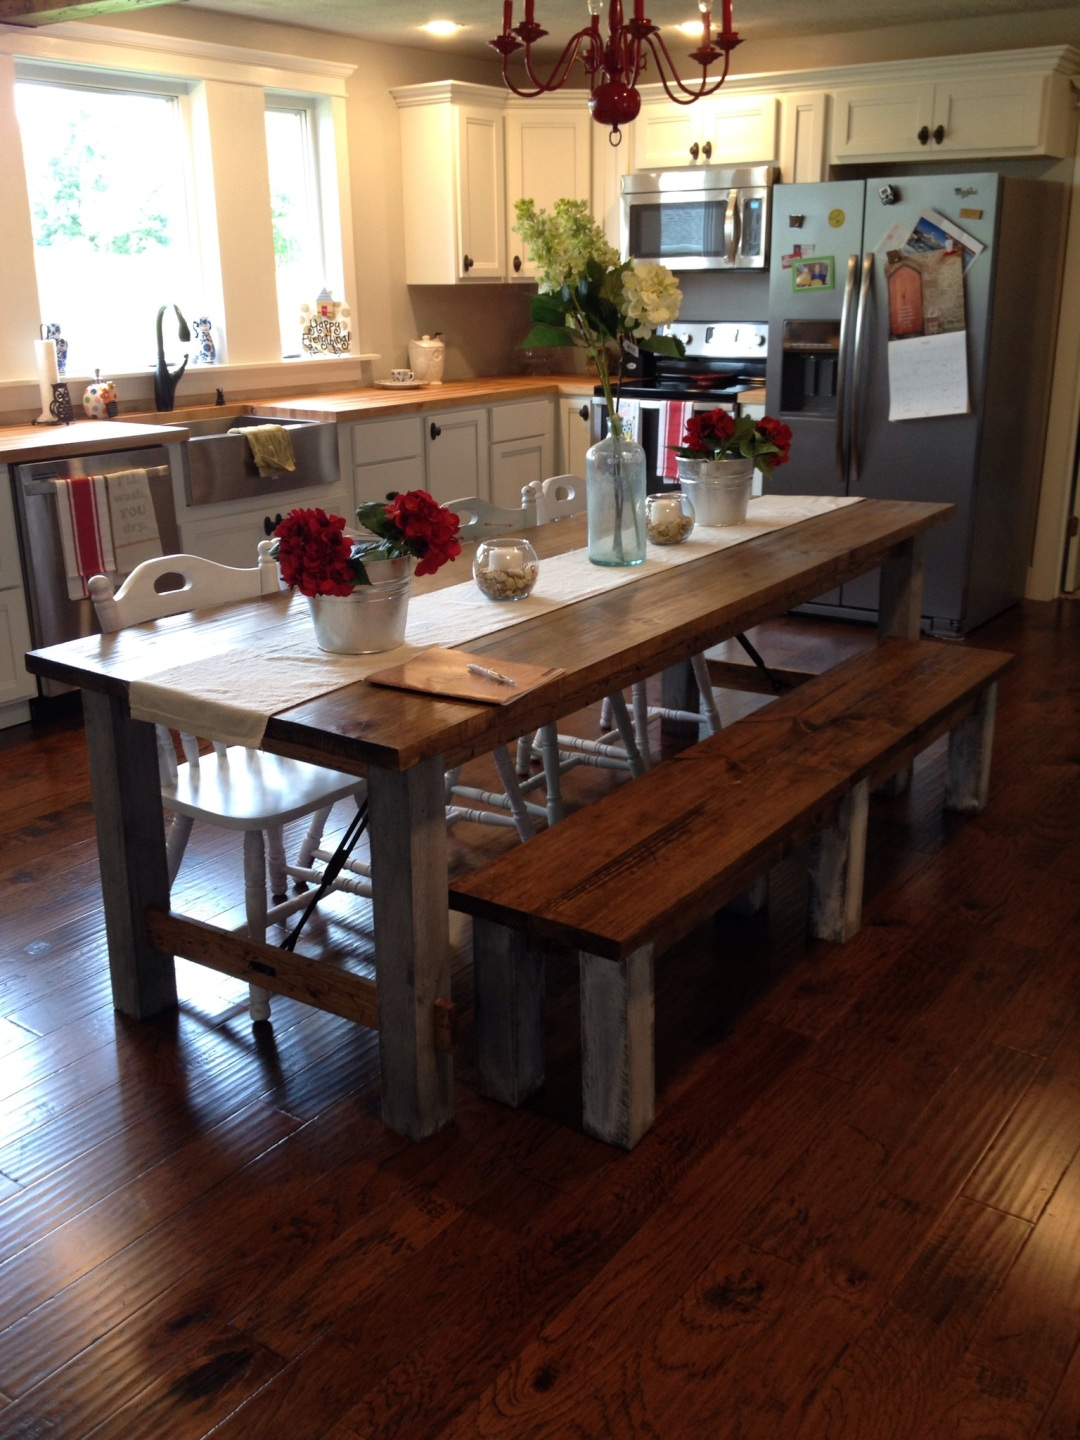 How to Build Your Own Dining Table with Plenty of Seating